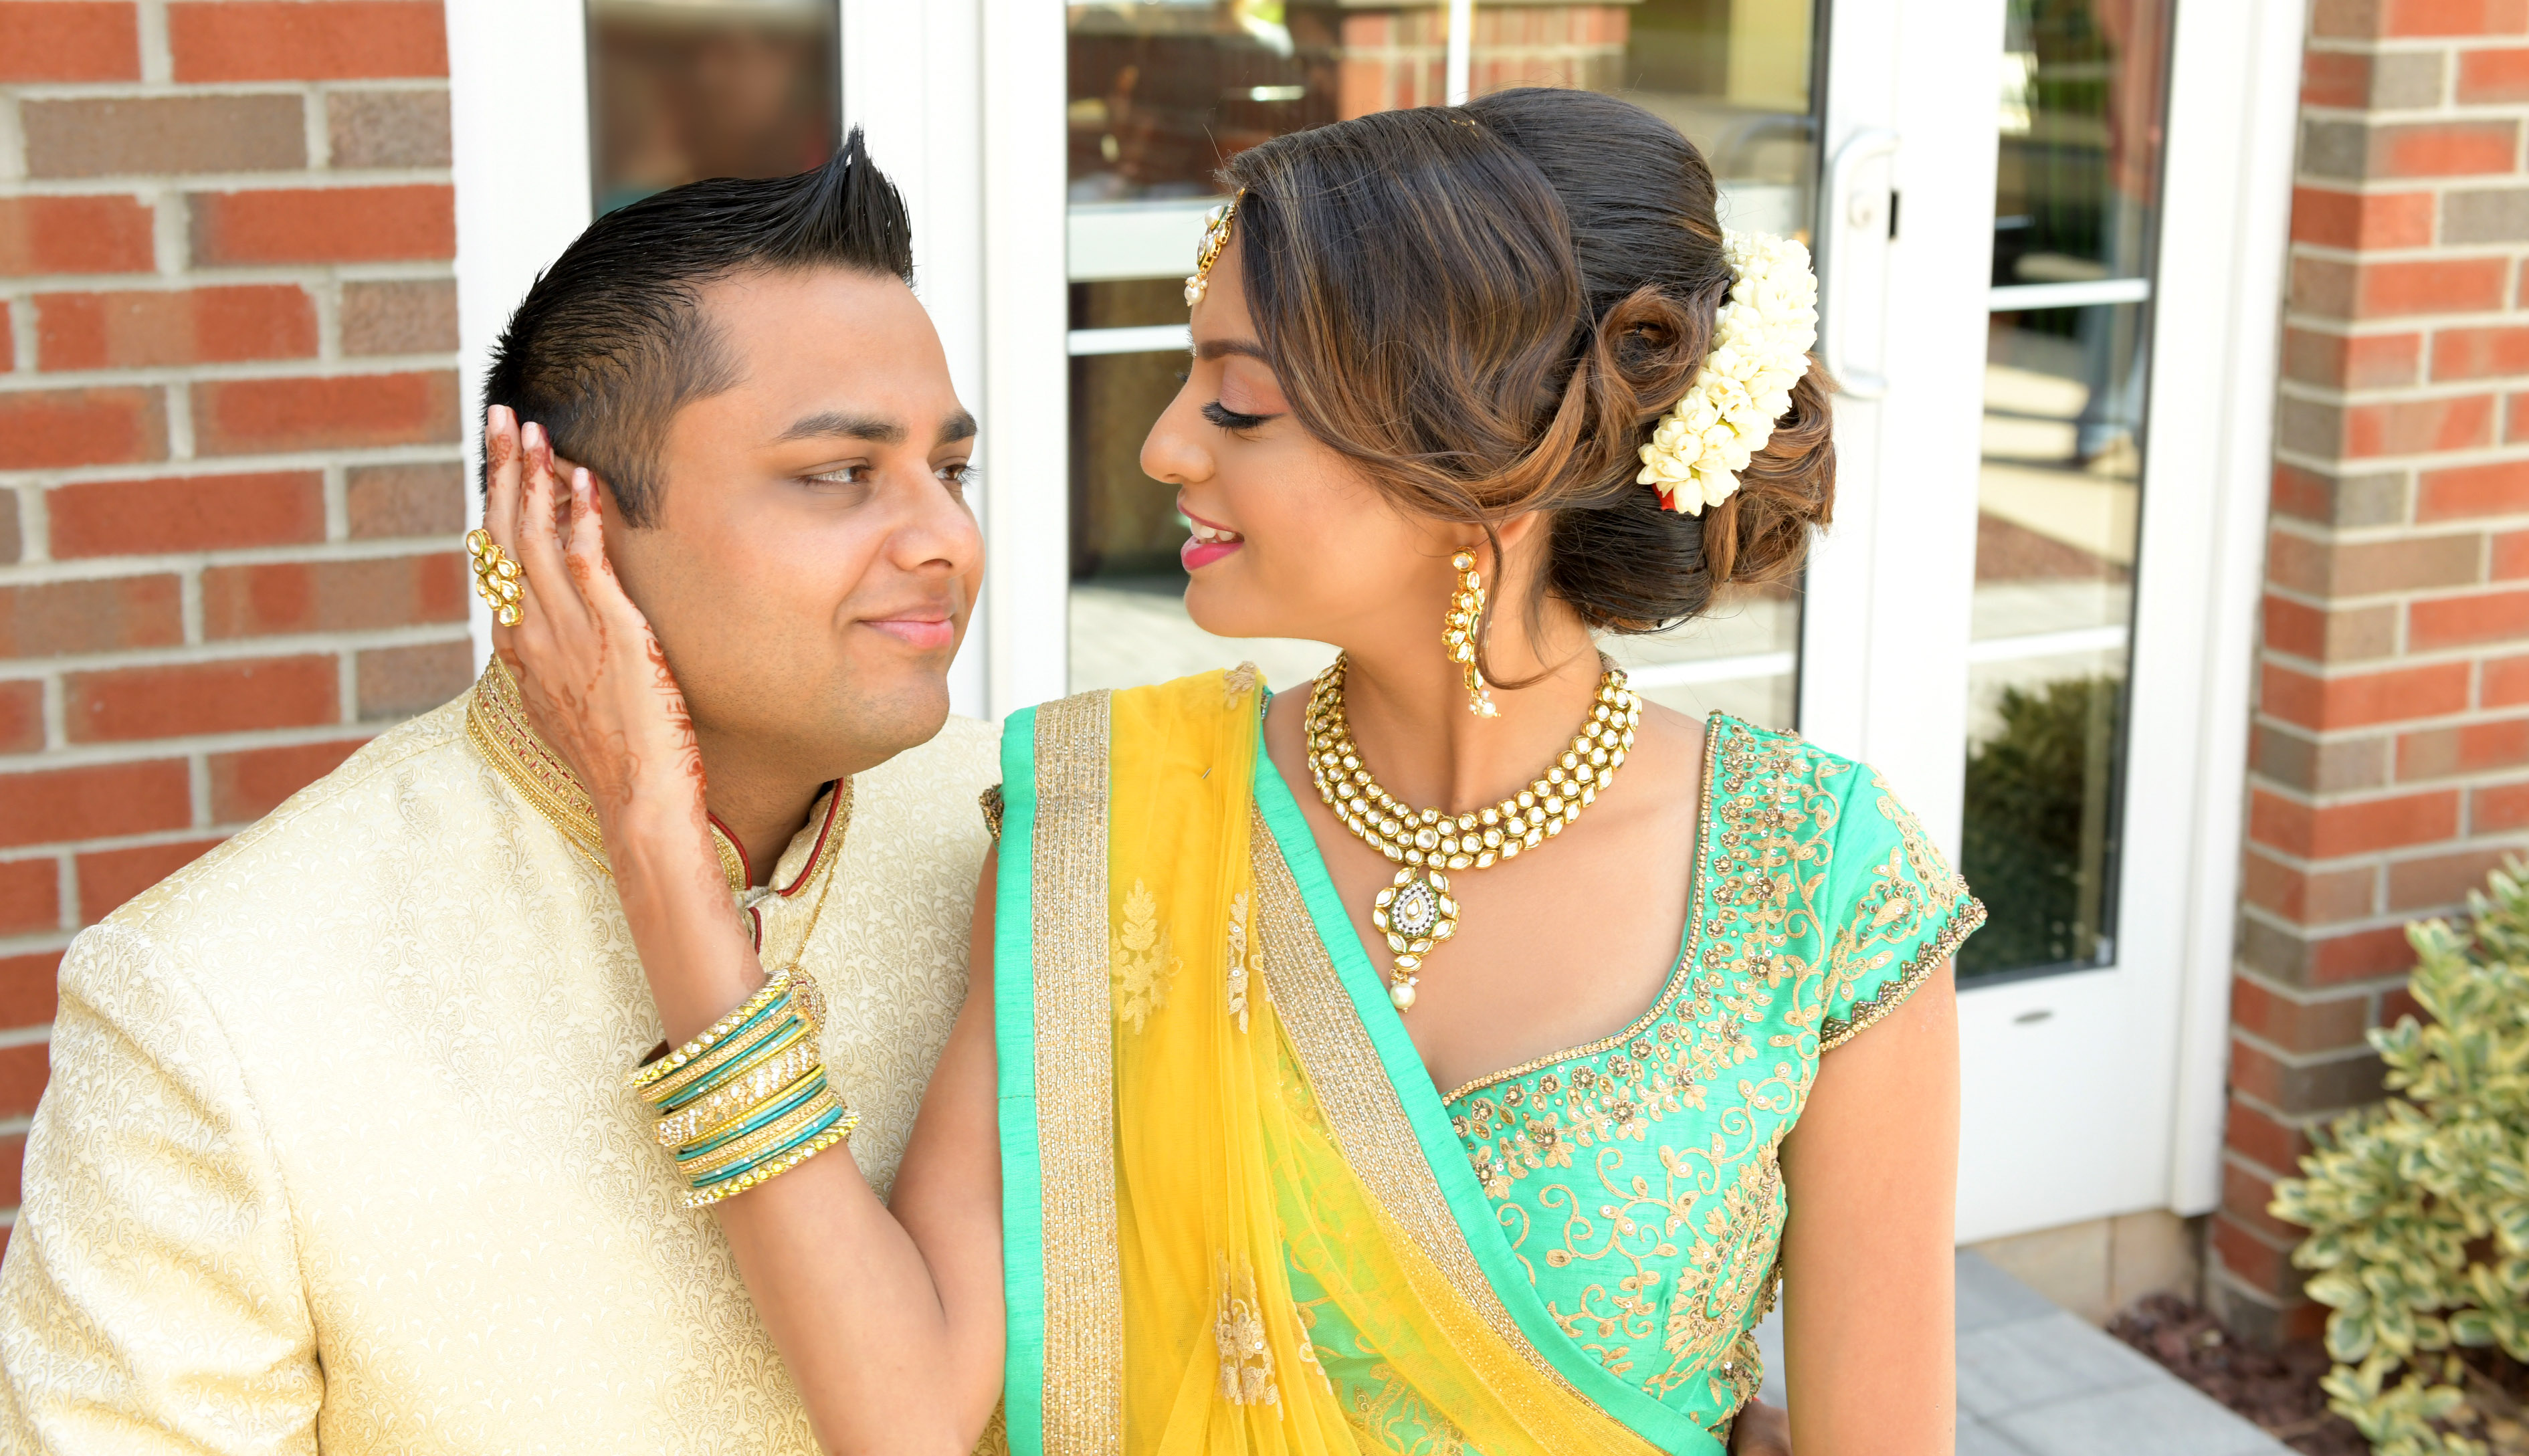 Indian Wedding Photography - Bride and Groom in NJ